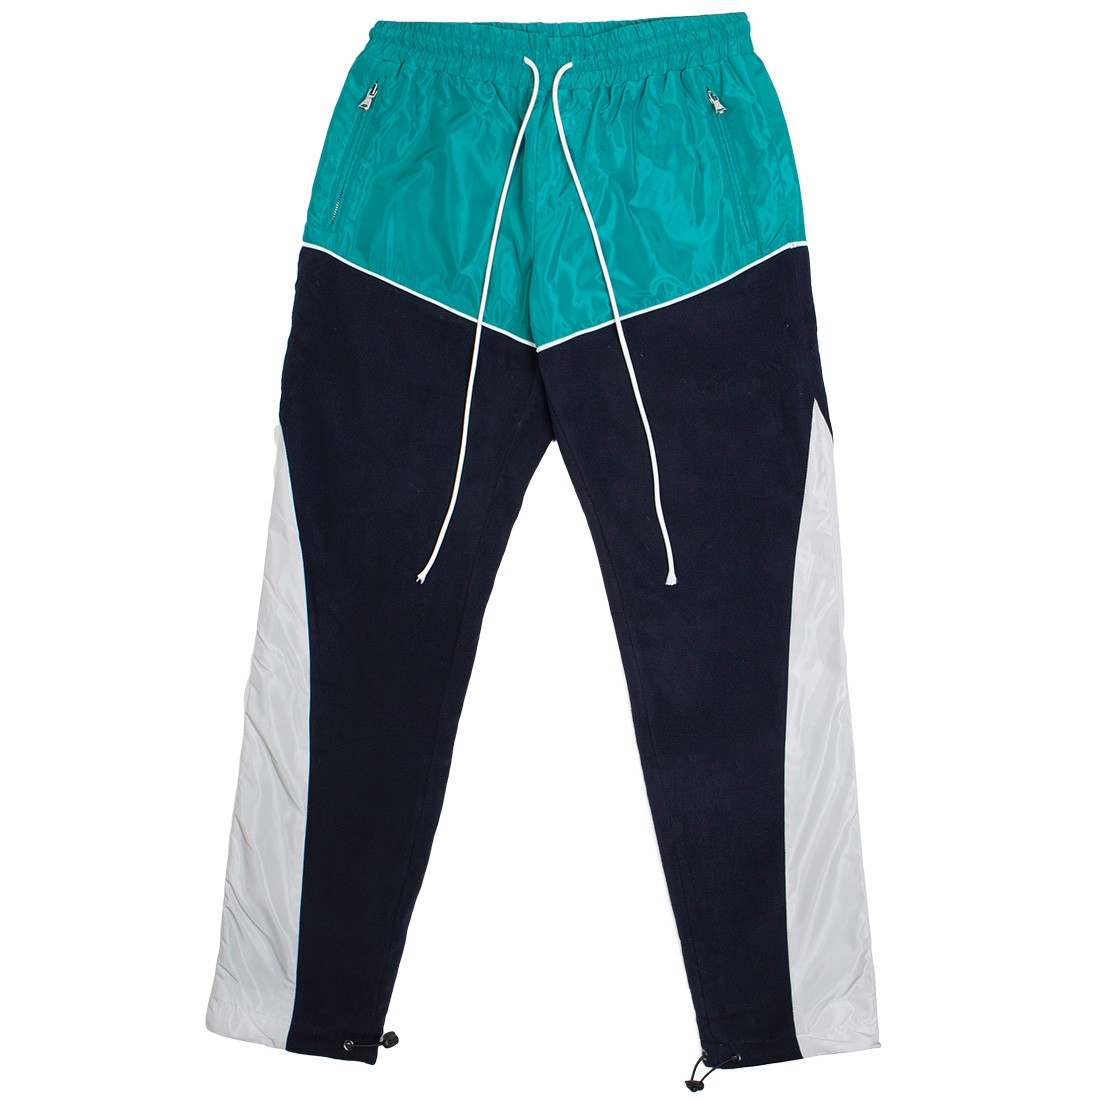 Lifted Anchors Men Madden Pants (teal / blue)